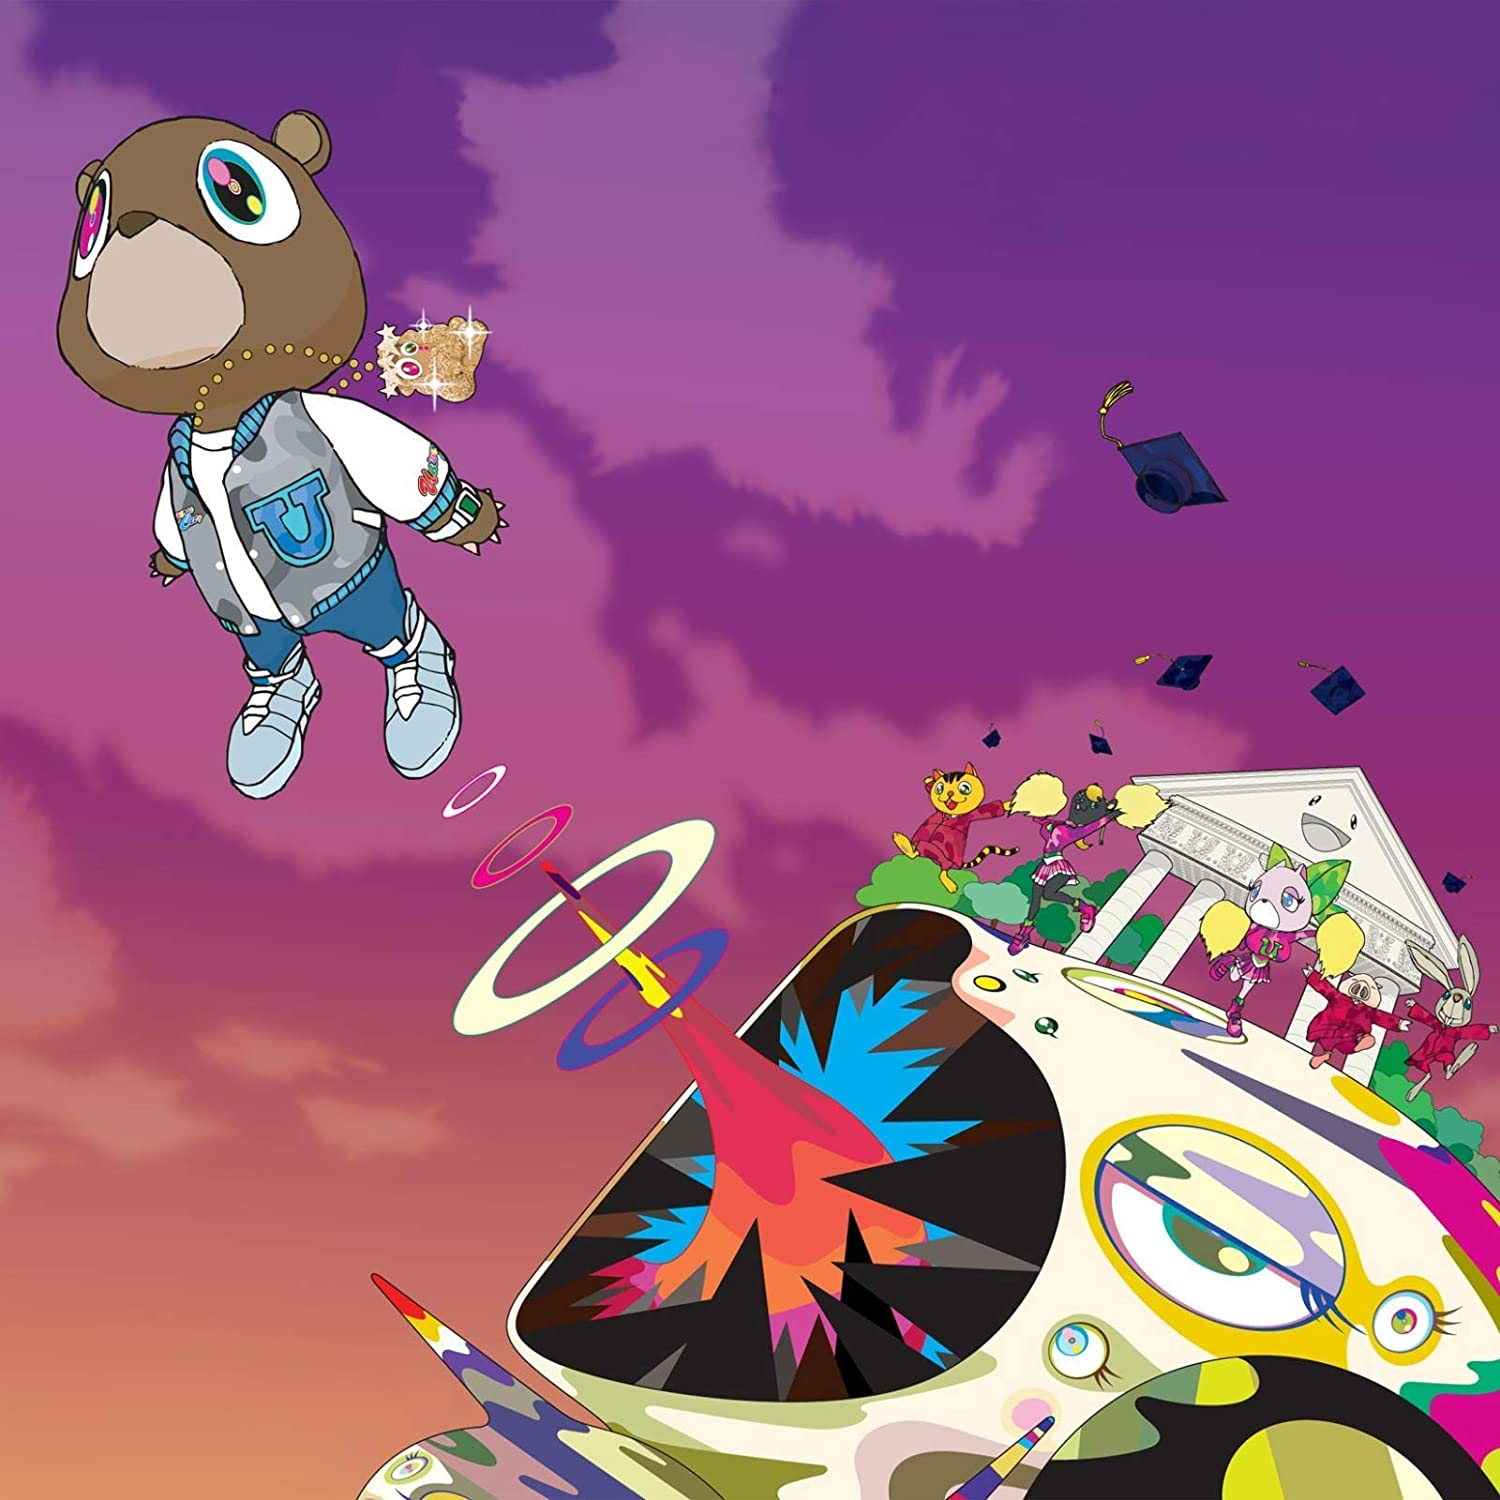 Kanye West Graduation Poster Art Print Posters 11/×11 inches Unframed Canvas Print